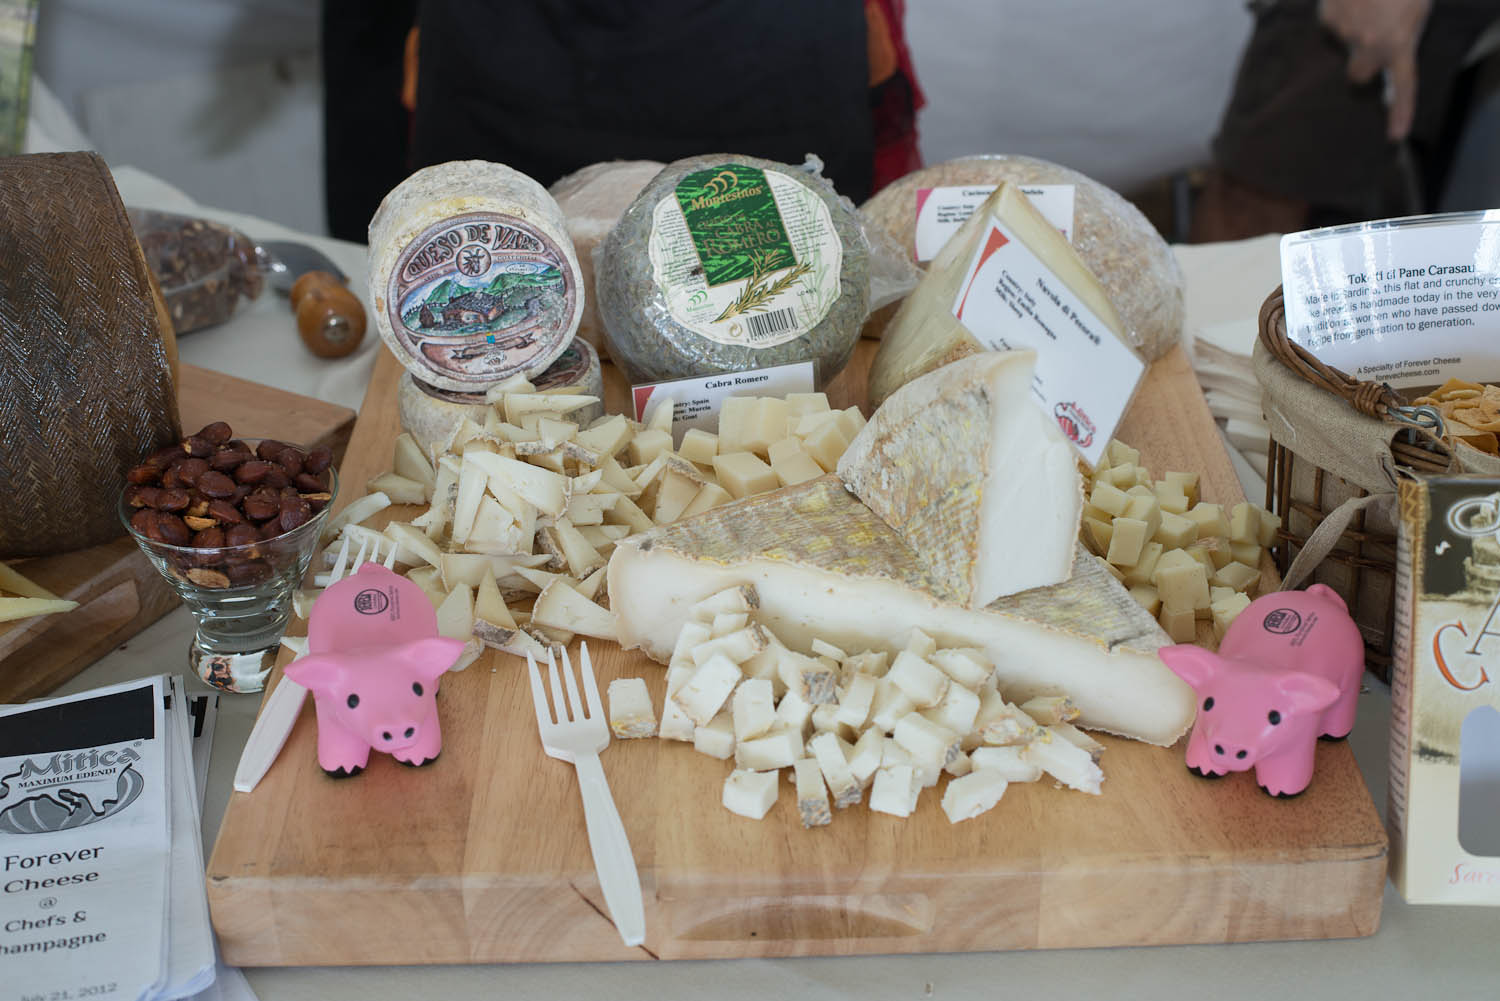 A selection of cheese from Forever Cheese